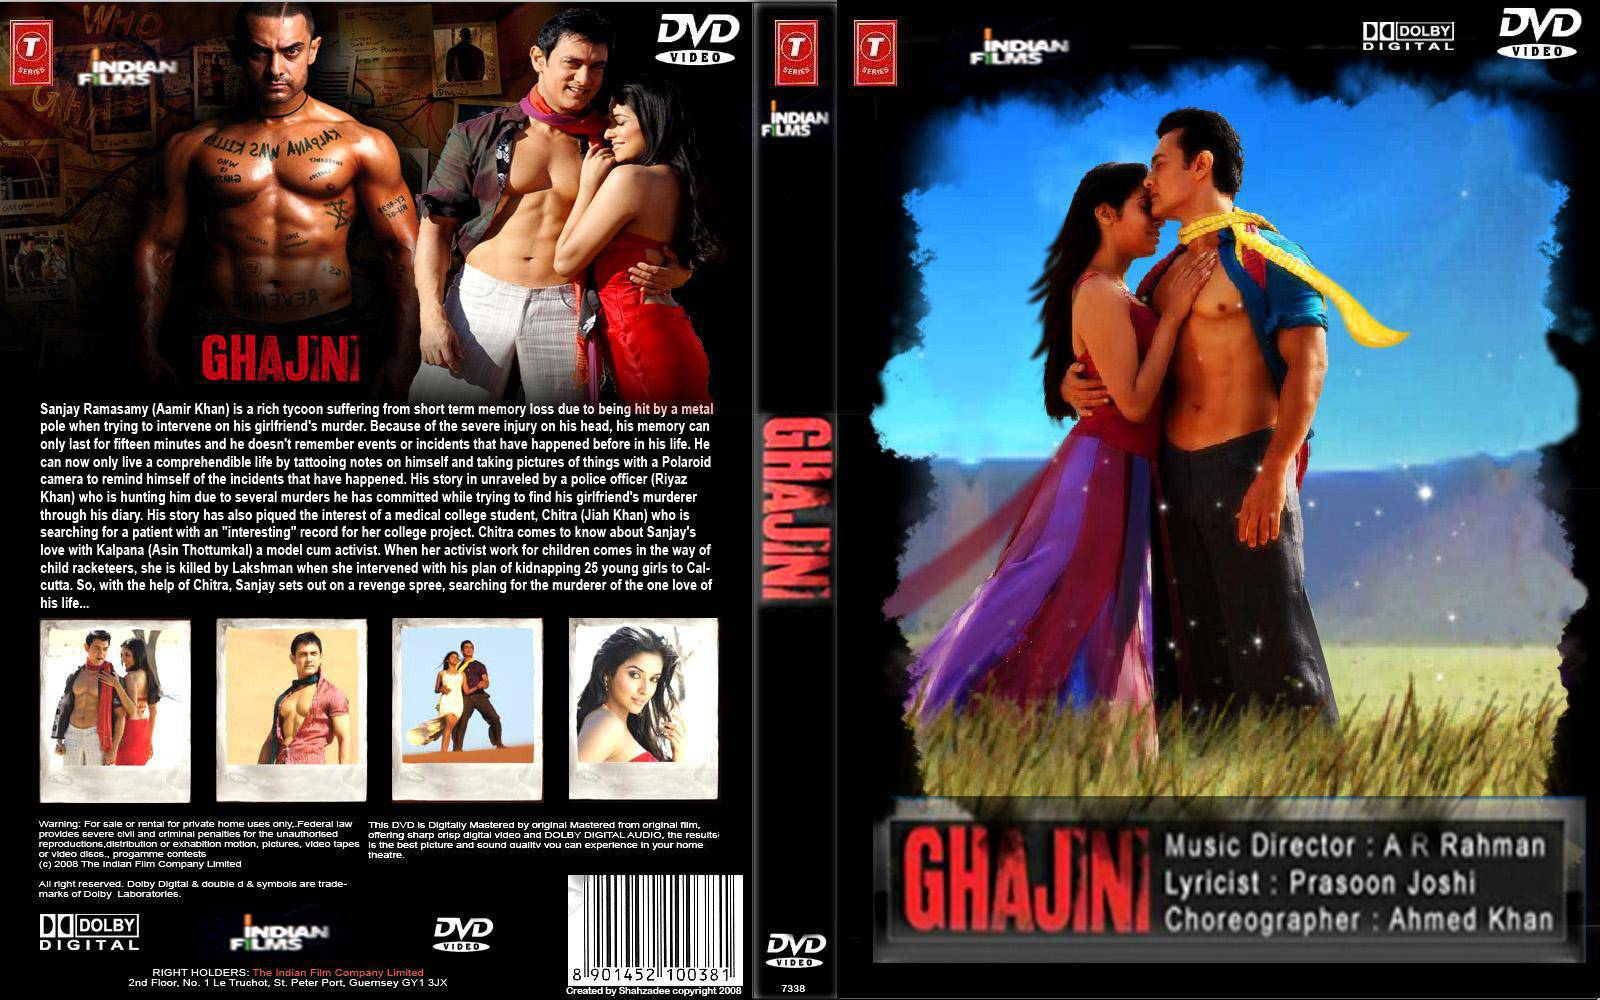 Ghajini 2008 720p Upscaled x264 AC3 Multi Subs [DMN] preview 0